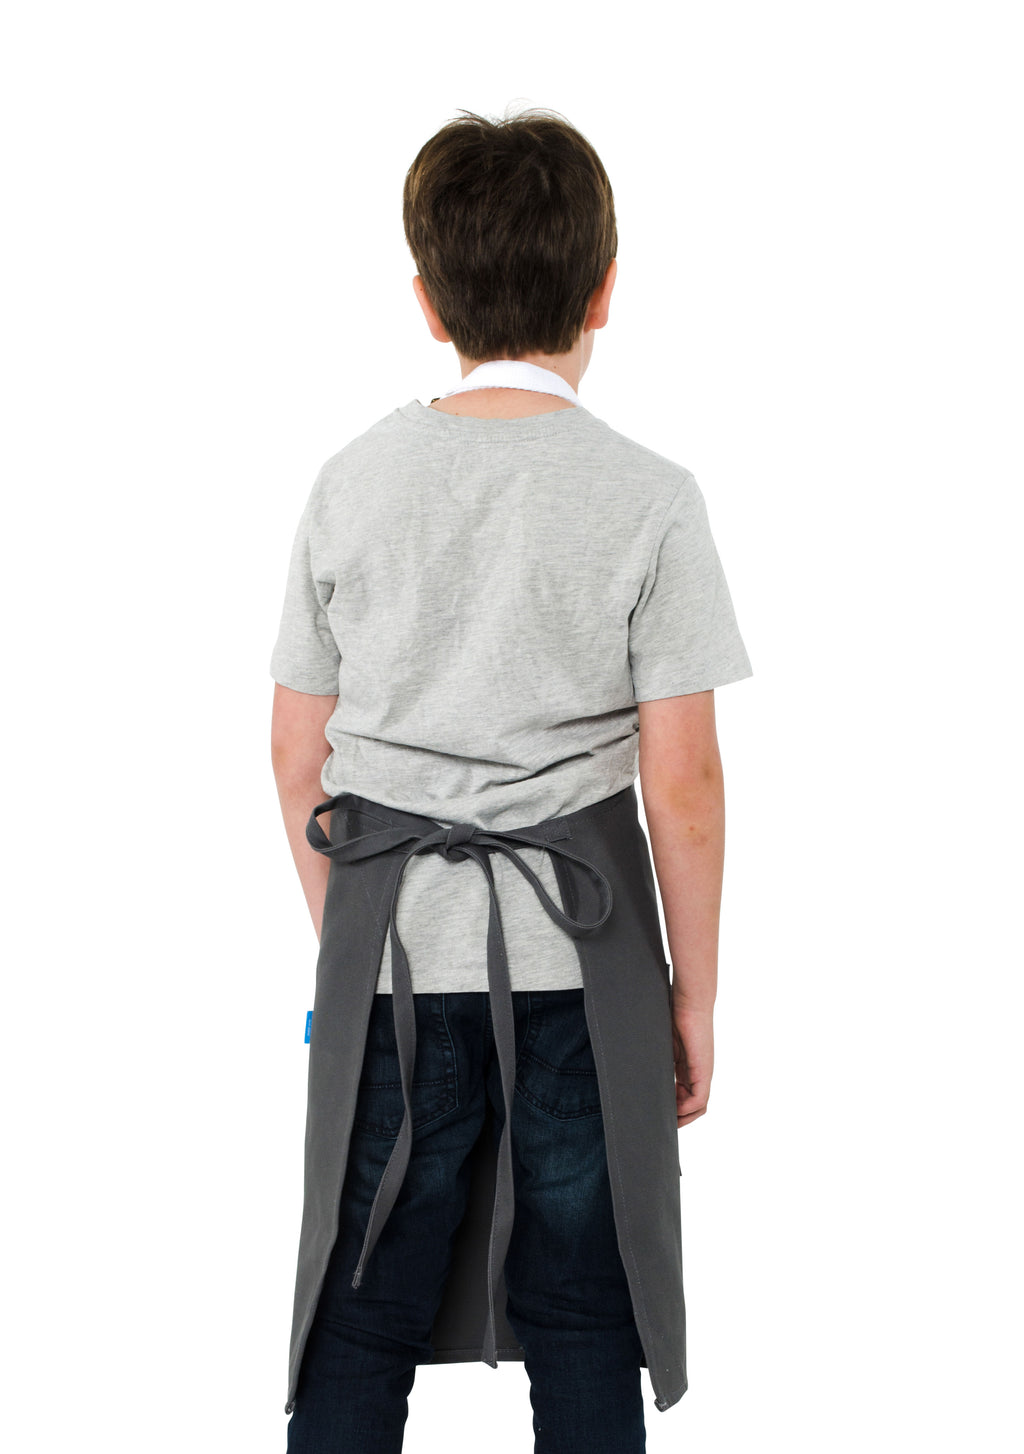 MISCHA KIDS APRON 8-12 YEARS GRAY